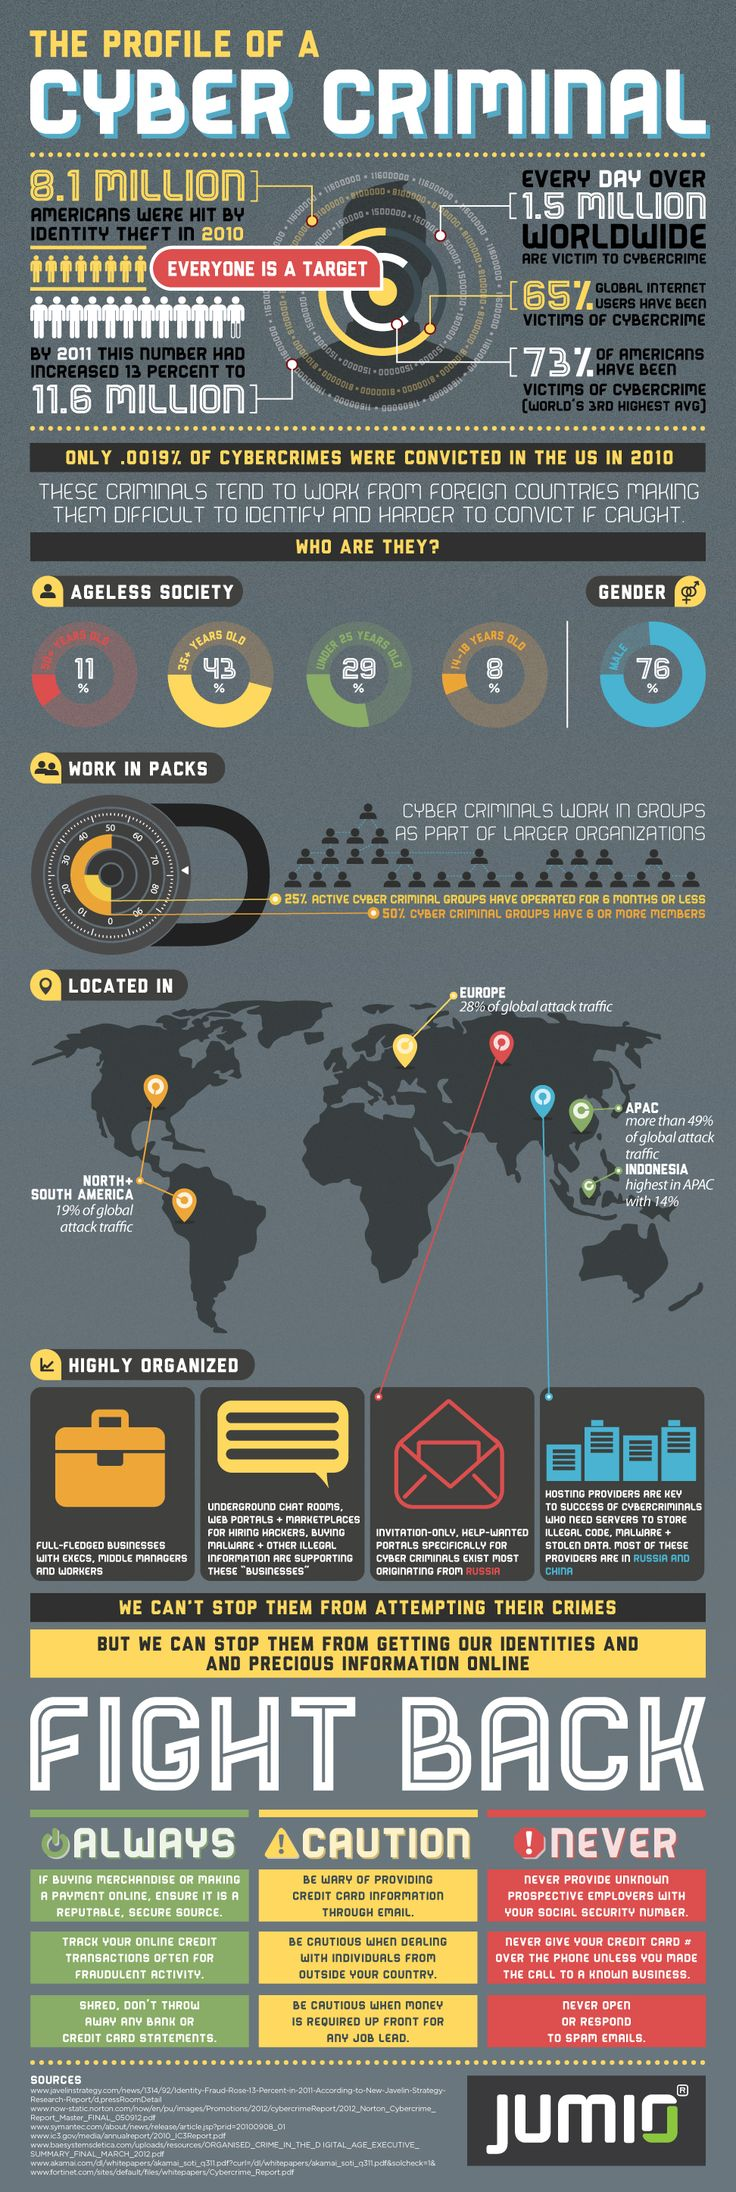 best images about life path forensic profile of a cyber criminal infographic